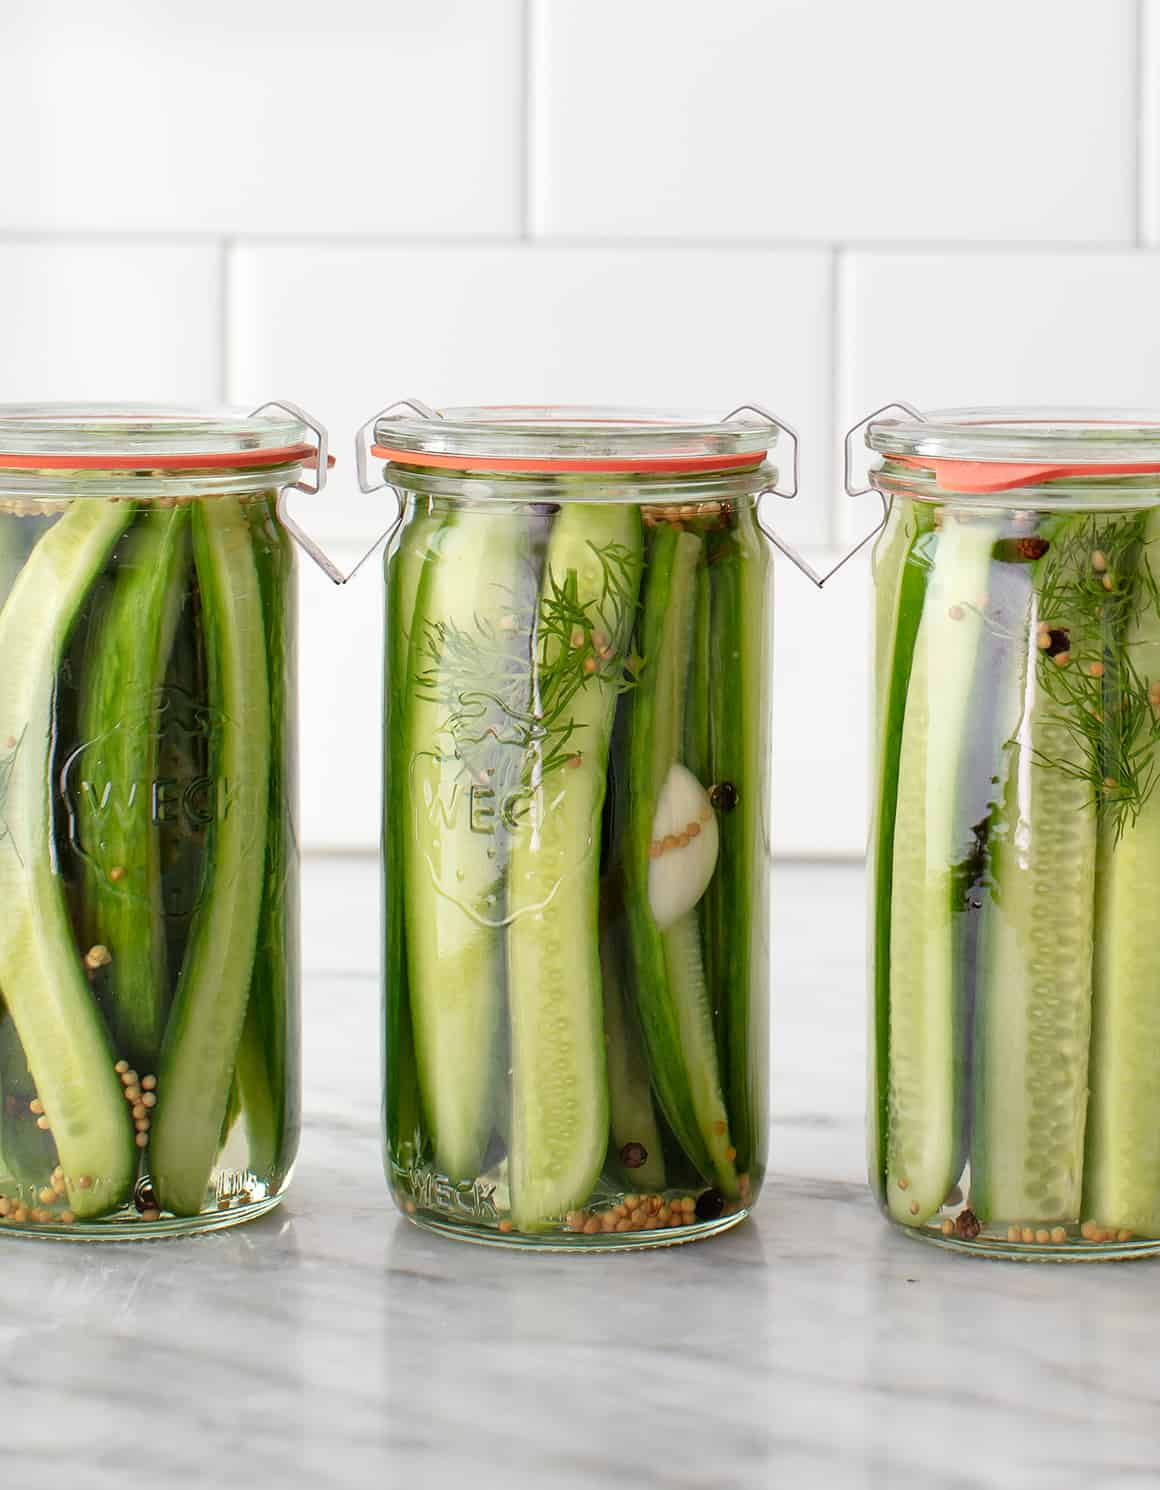 Dill Pickles Recipe Love And Lemons